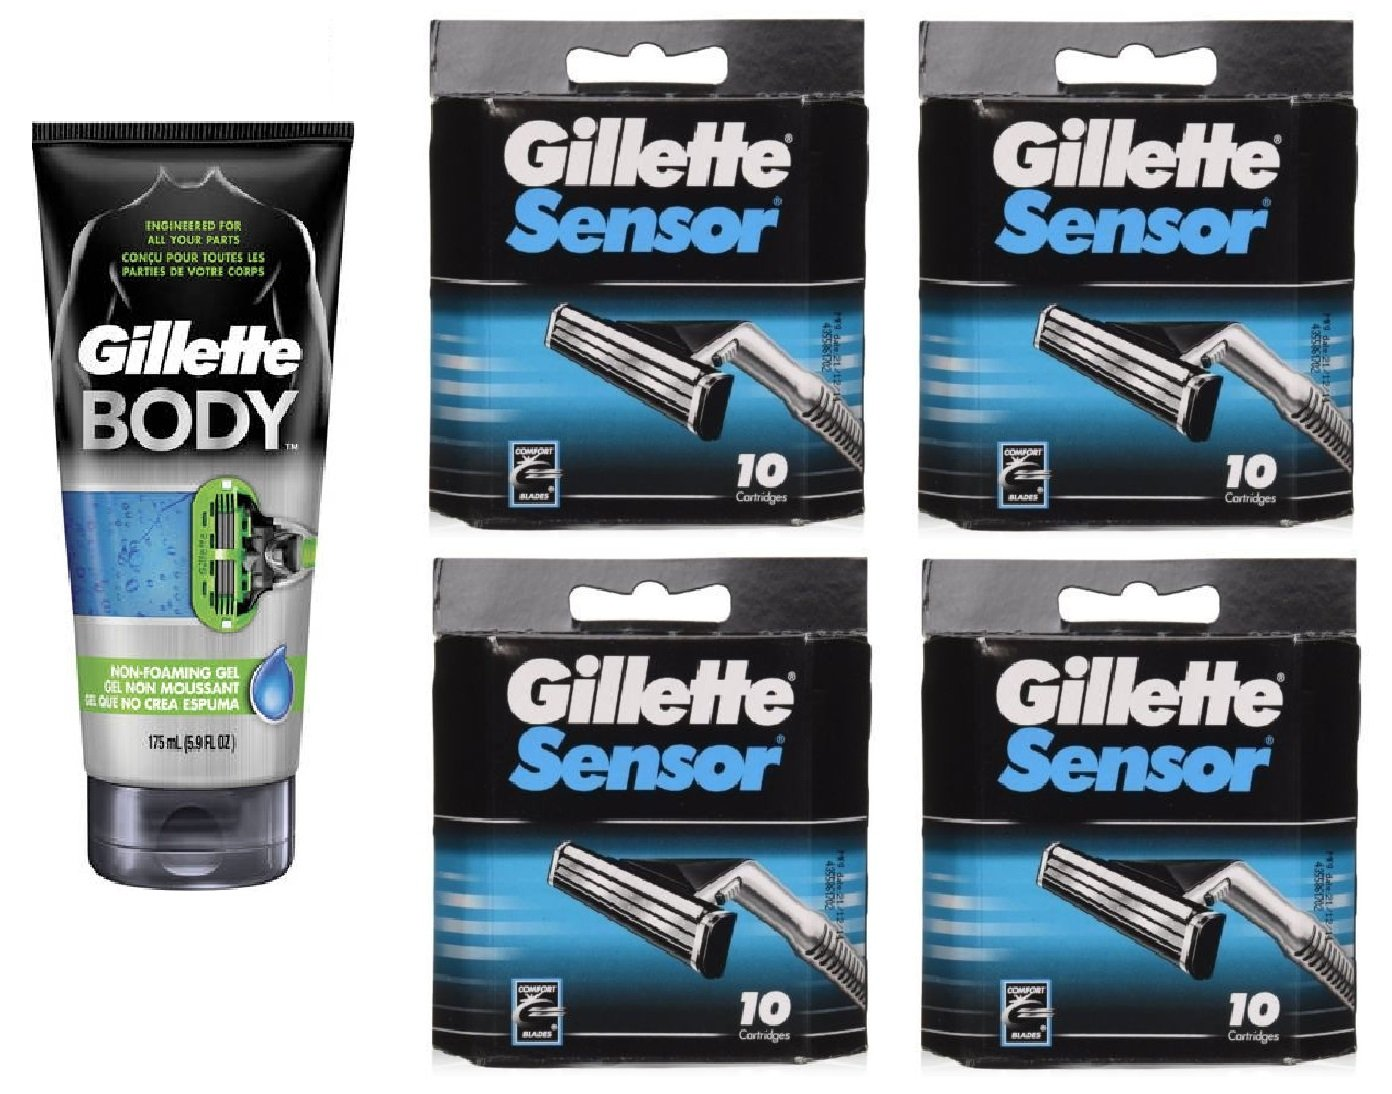 Gillette Body Non Foaming Shave Gel for Men, 5.9 Fl Oz + Sensor Refill Blades 10 Ct. (4 Pack) + FREE Luxury Luffa Loofah Bath Sponge On A Rope, Color May Vary